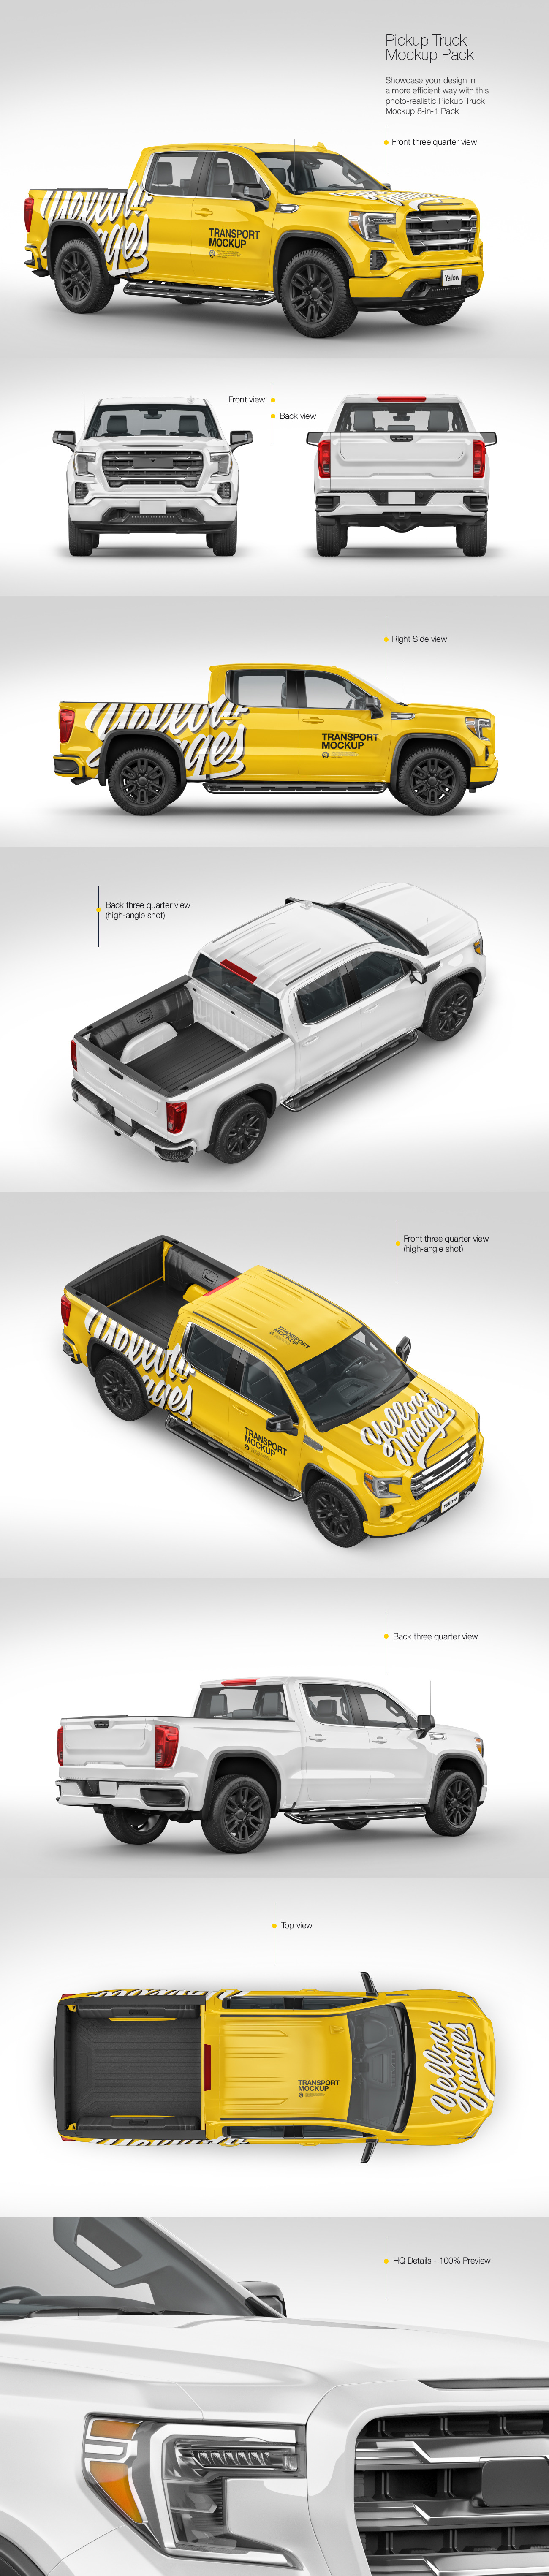 Download Pickup Truck Mockup Pack In Handpicked Sets Of Vehicles On Yellow Images Creative Store Yellowimages Mockups